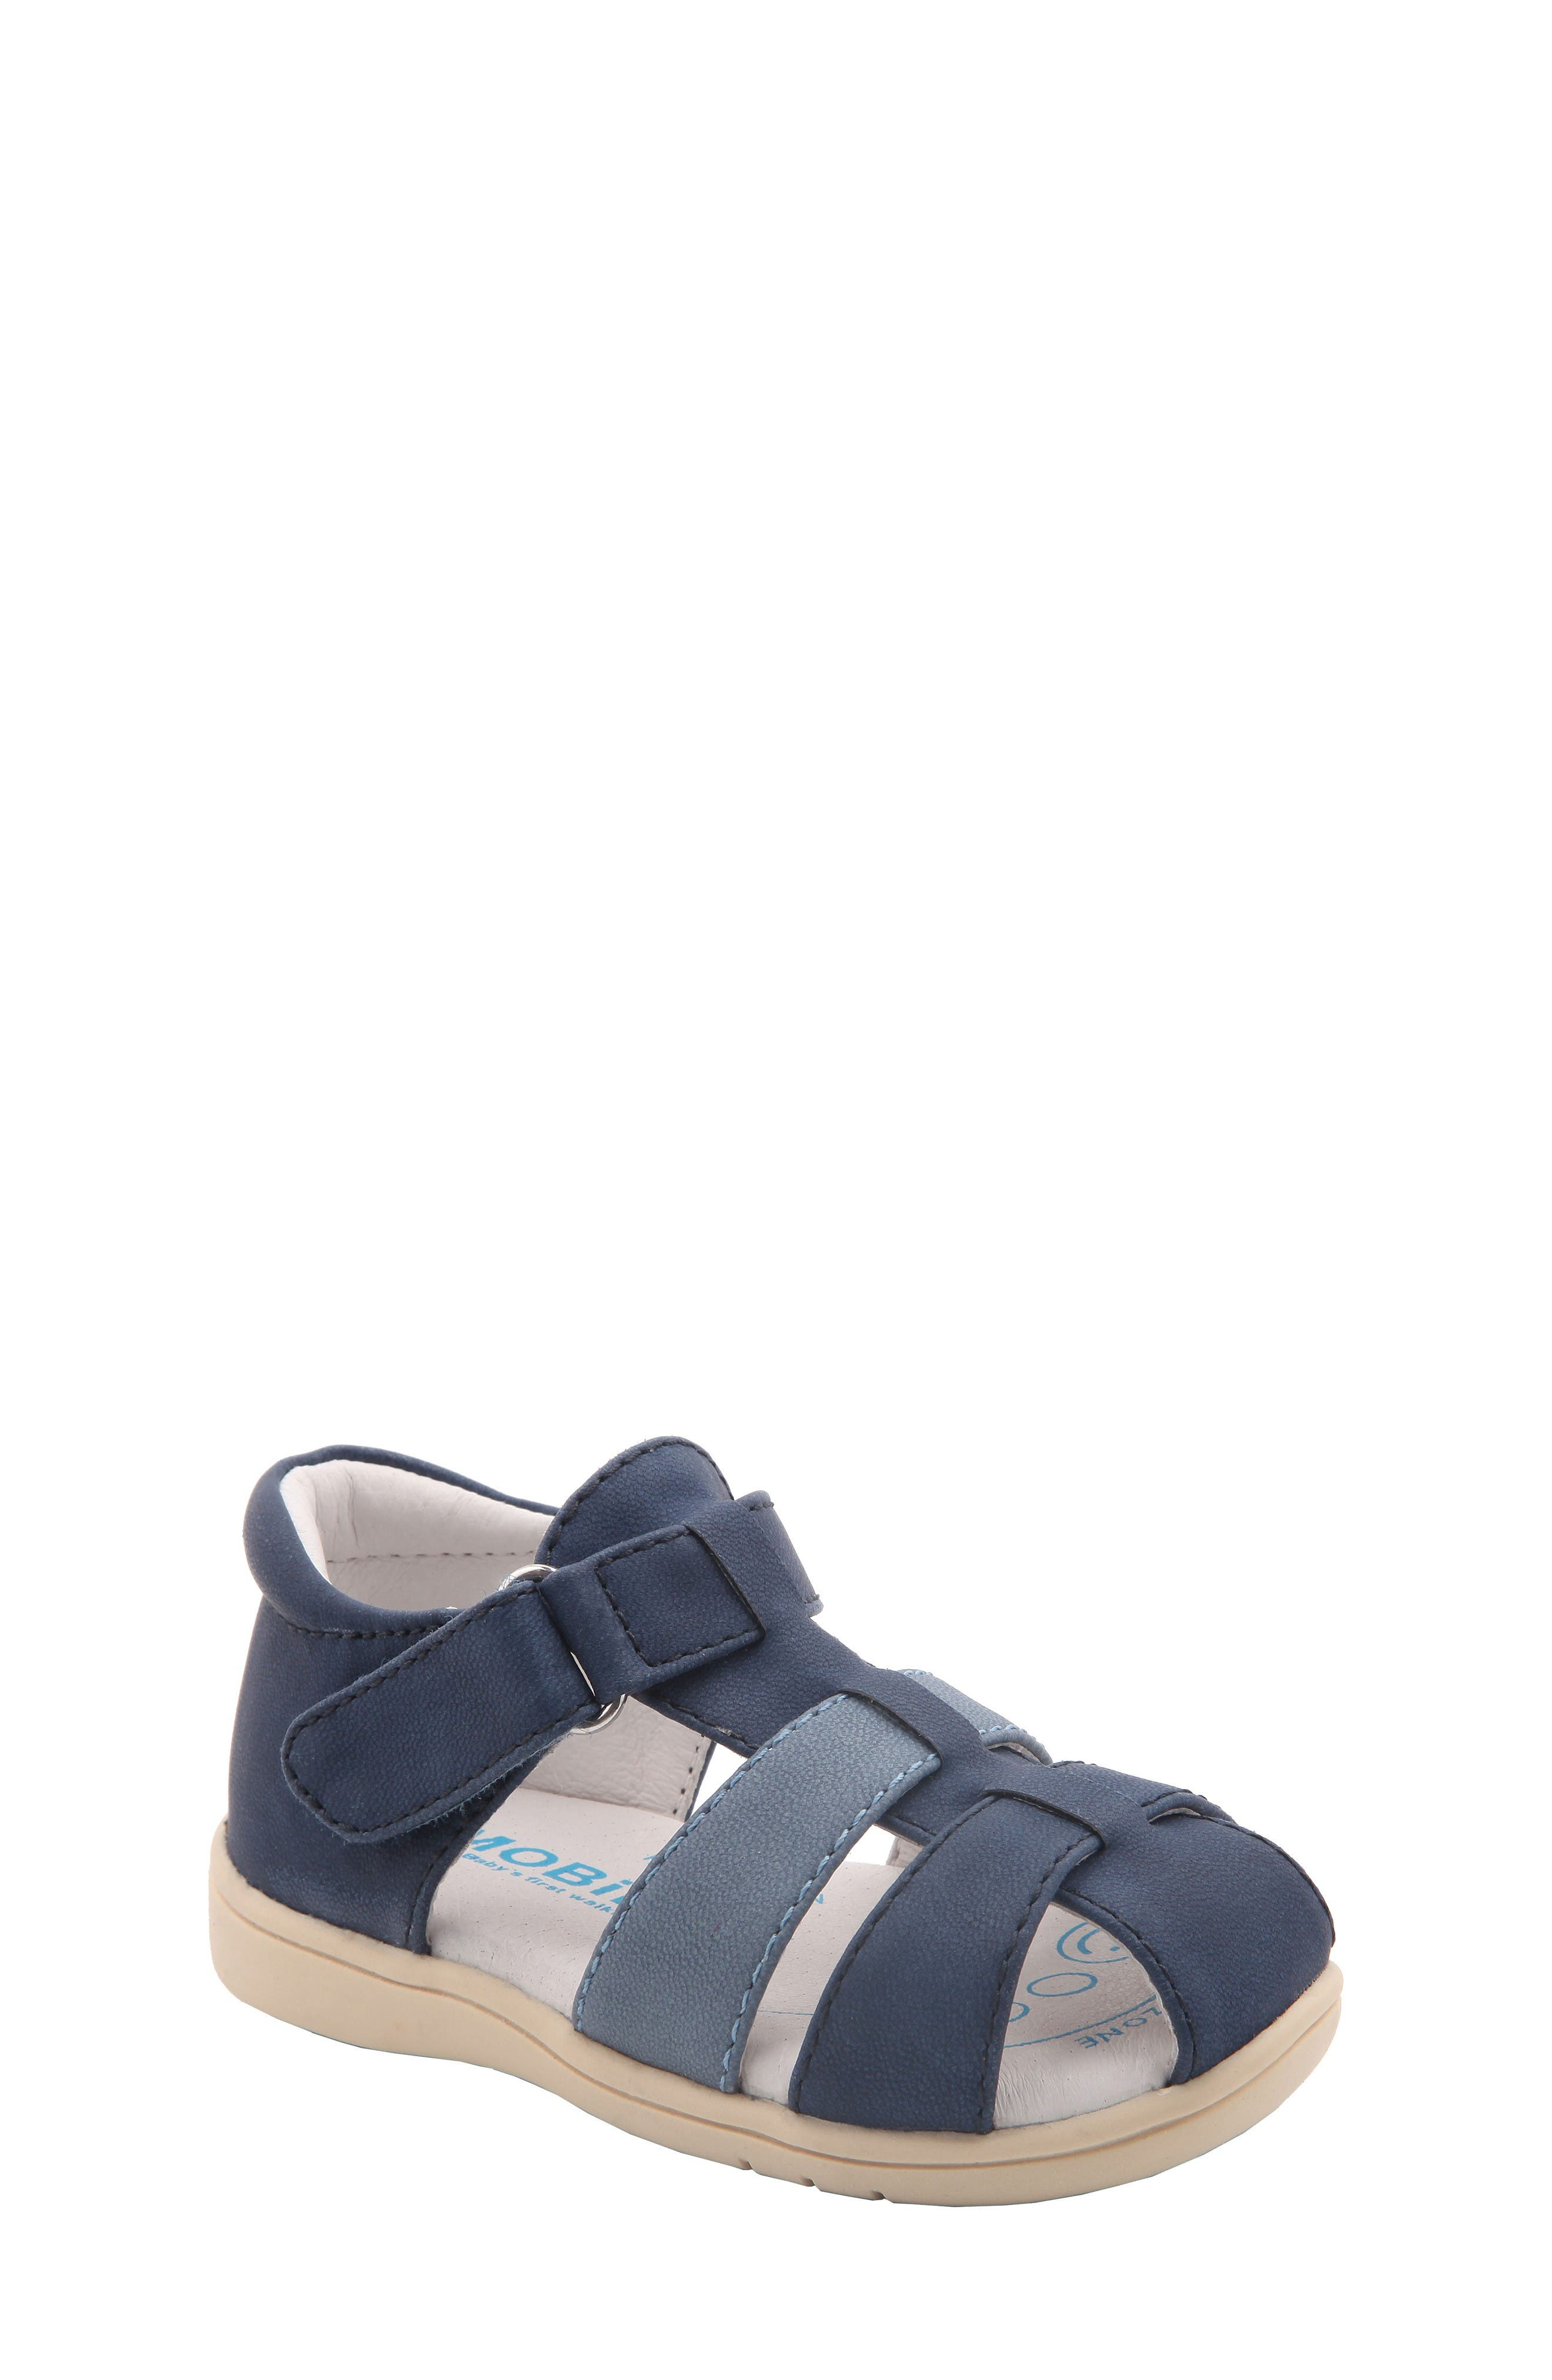 Gage Fisherman Sandal,                             Main thumbnail 1, color,                             Navy Faux Leather